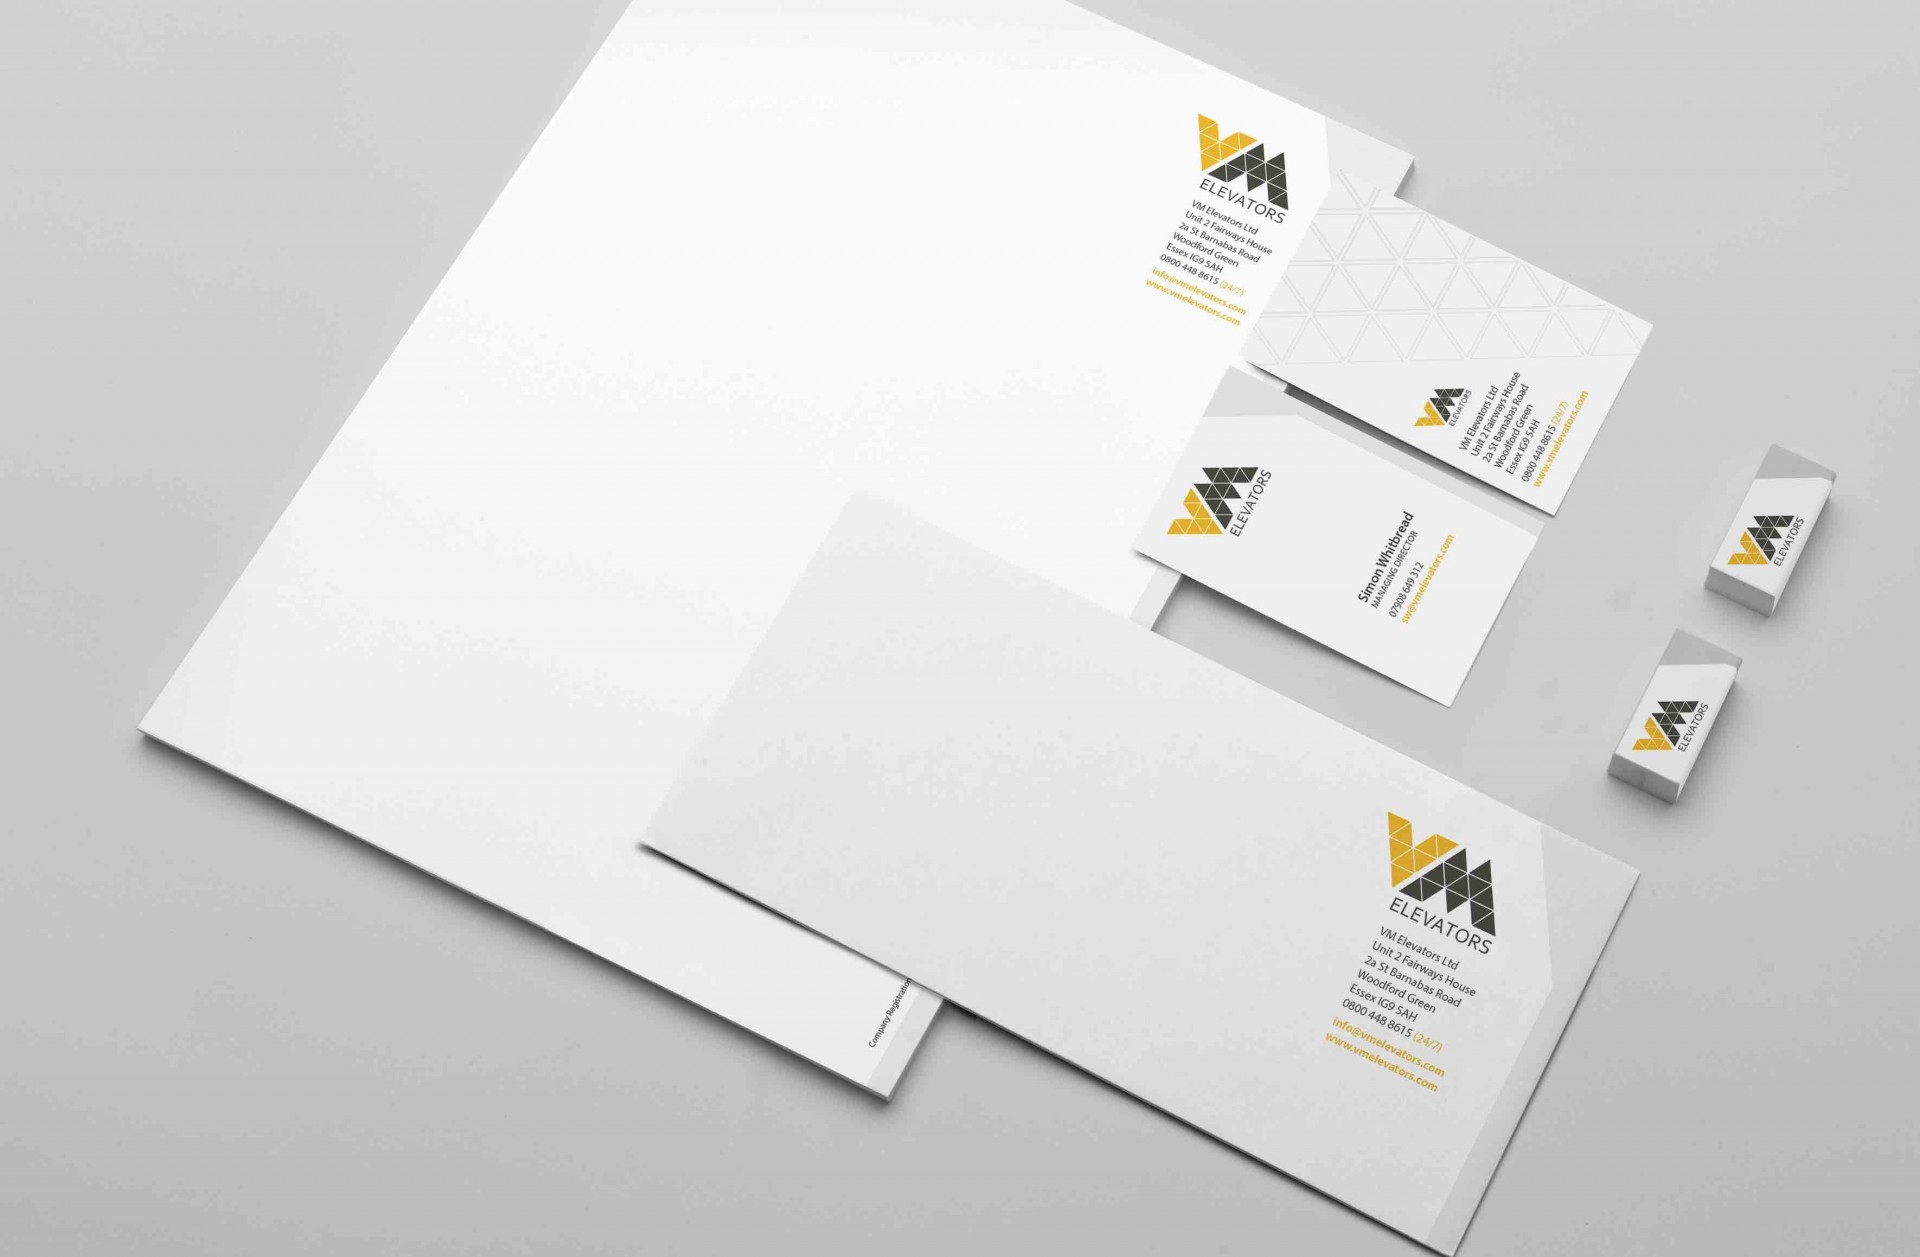 VM-Elevators-Stationery-Branding